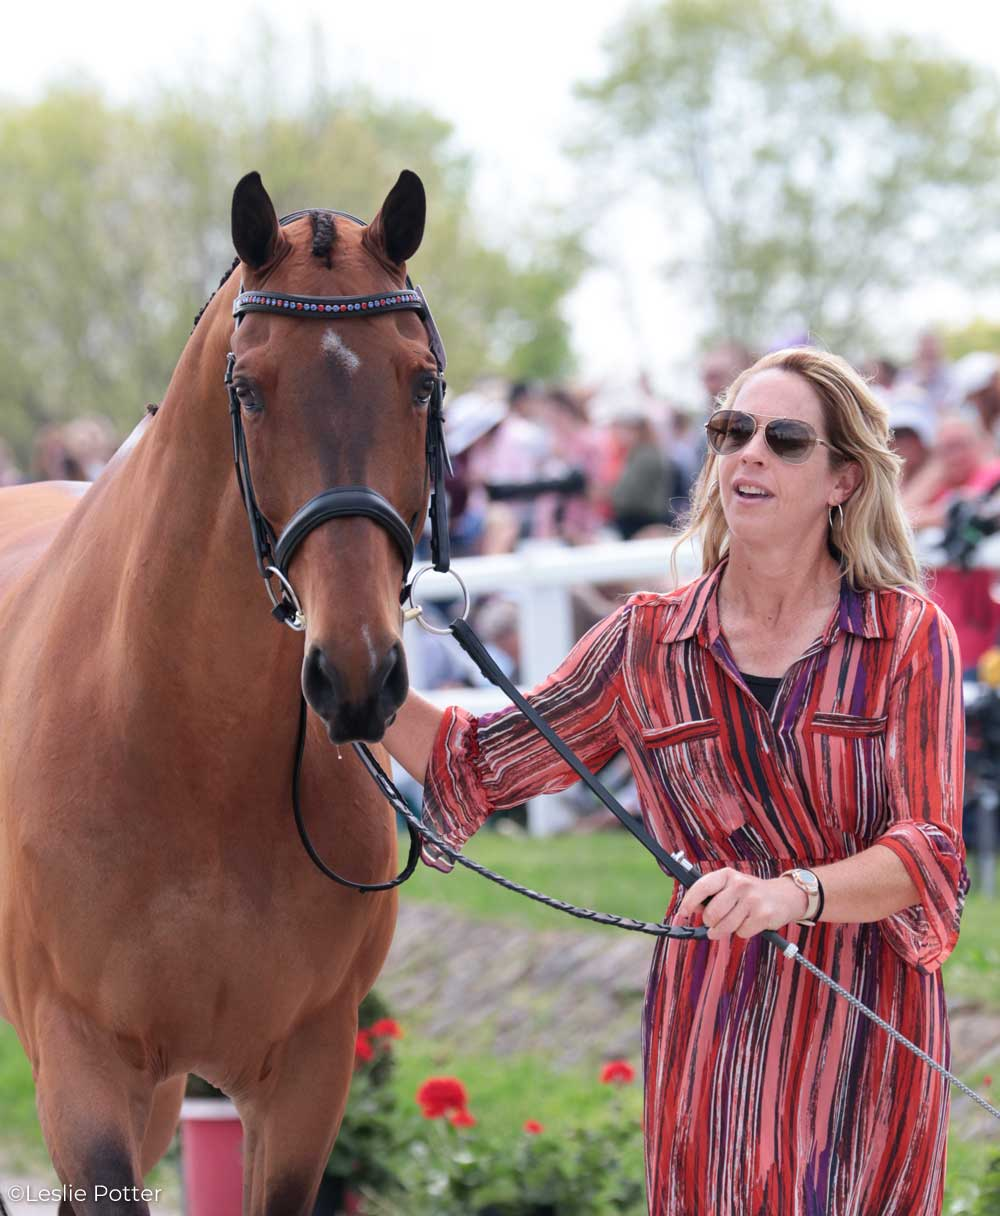 Mara Depuy (USA) and Congo Brazzaville C, a KWPN gelding